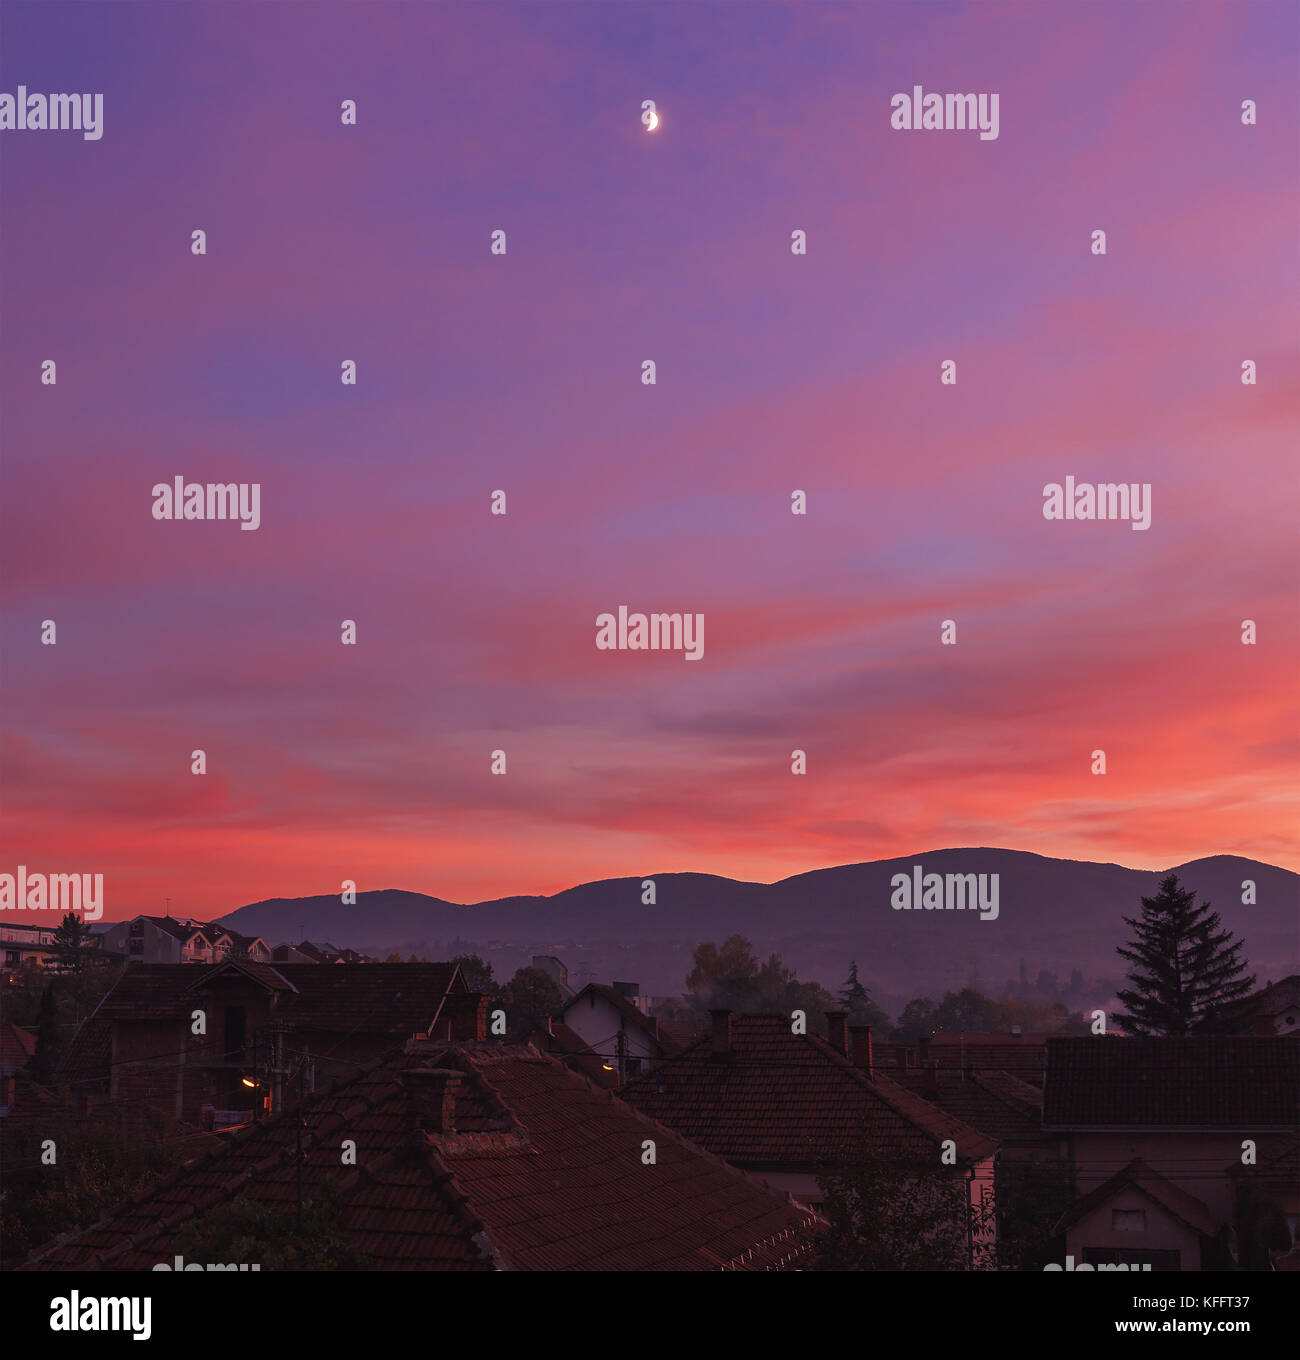 Sunset over small Balkan town, purple atmosphere and moon. - Stock Image